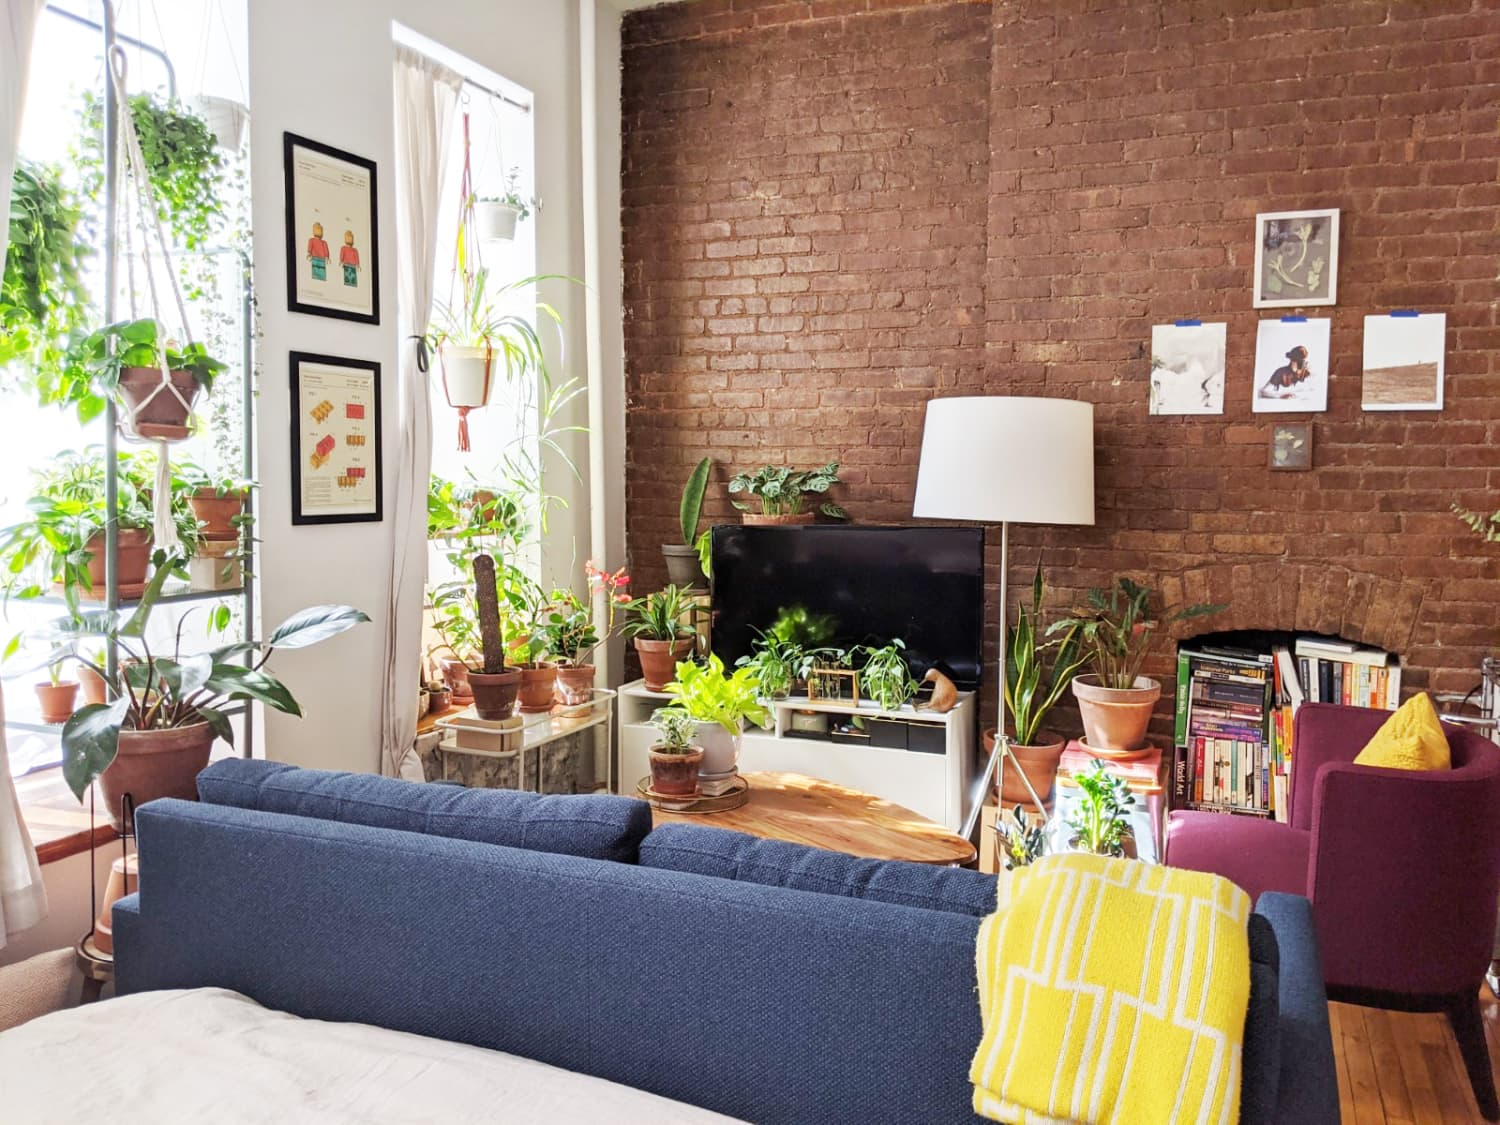 This 272-Square-Foot NYC Studio Uses an IKEA Clothes Rack in a Cute and Unique Way